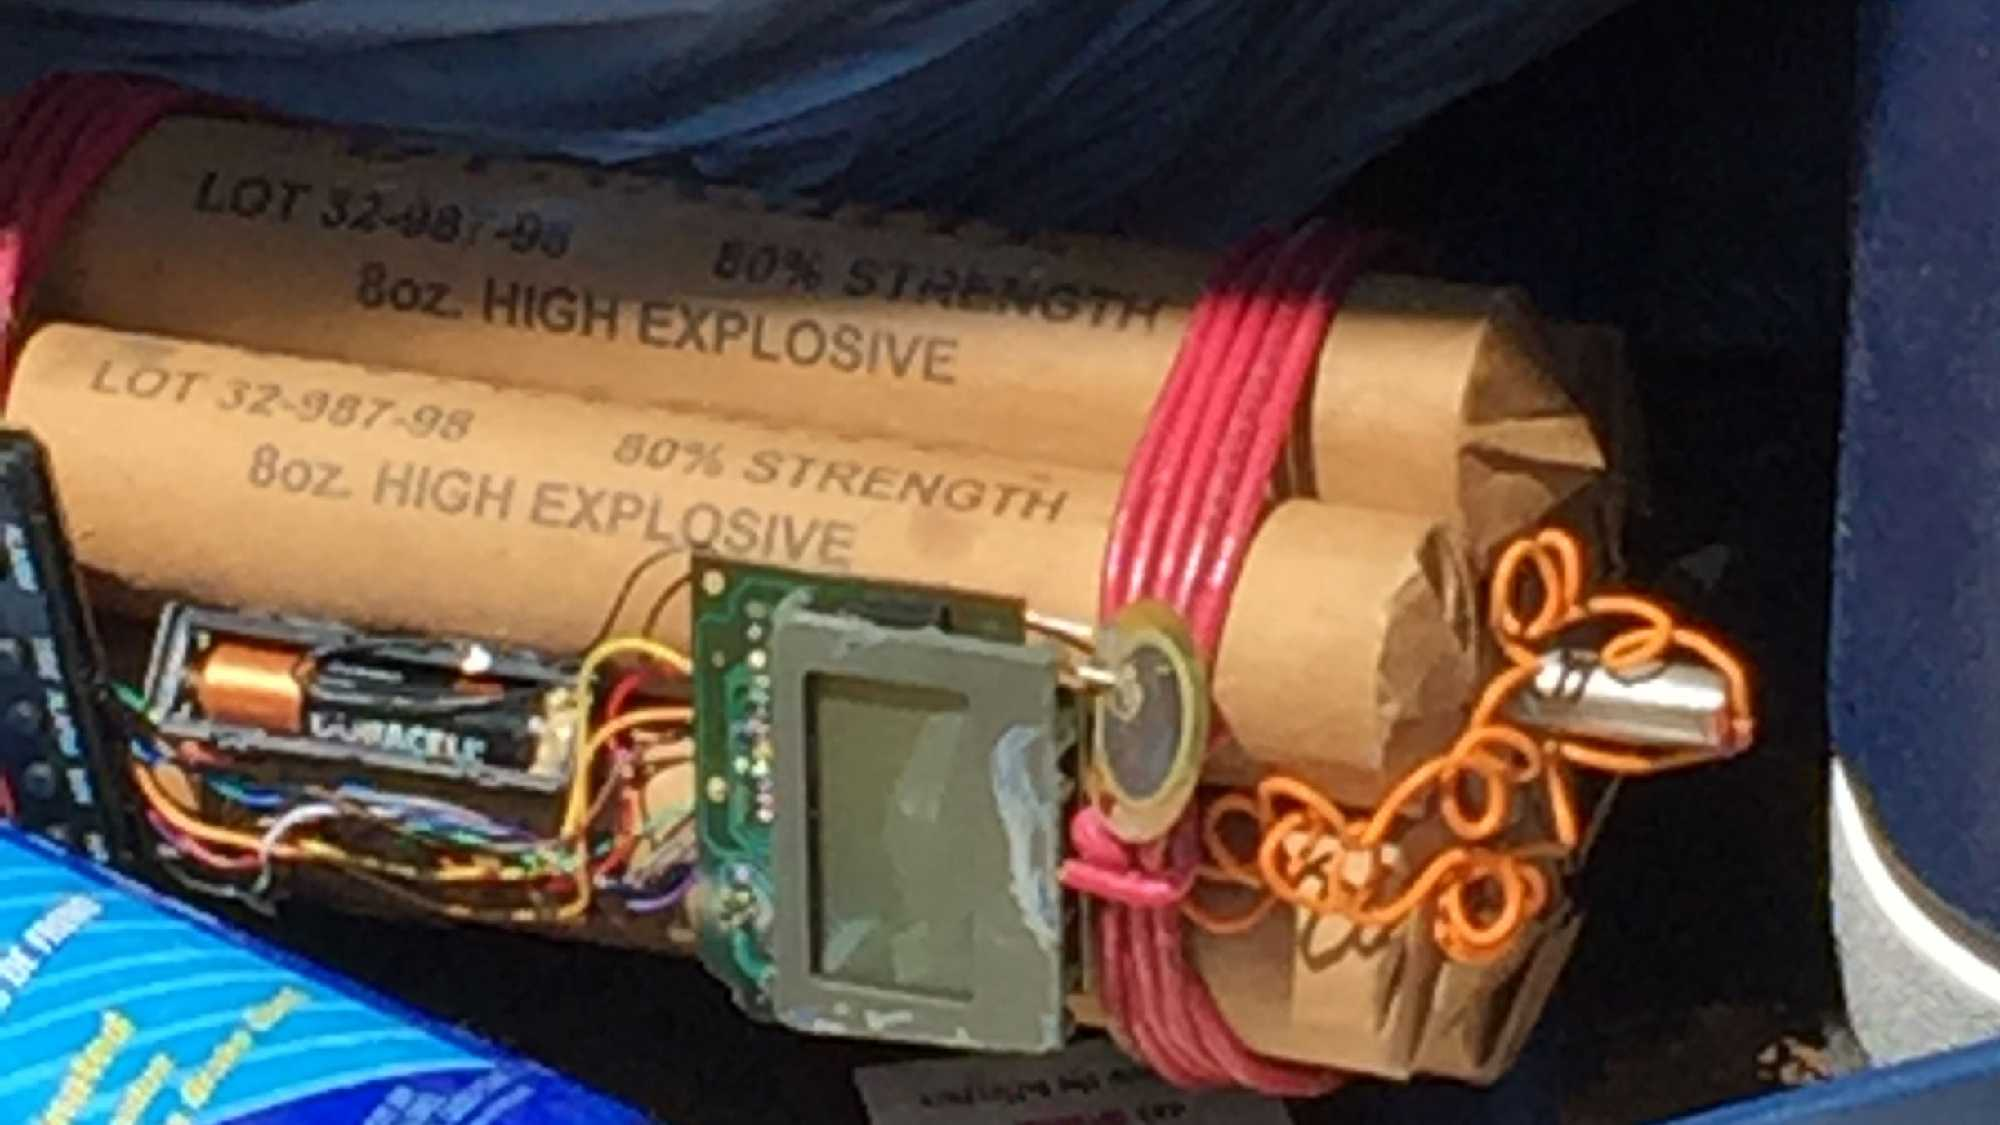 Object resembling a bomb found in car in Evendale.